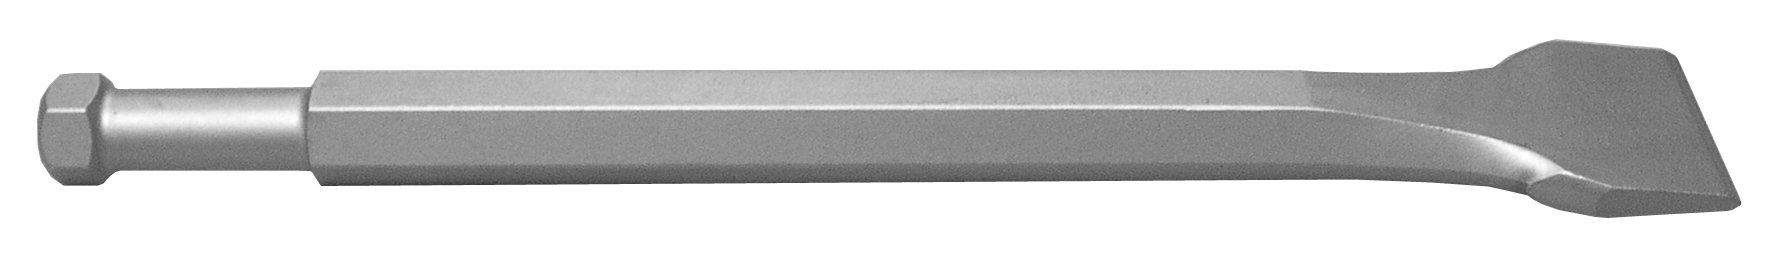 Champion Chisel, Hilti 805/905 Style Shank - 7/8-Inch Hex Steel, 14-Inch Long by 2-Inch Wide Chisel. Designed for use in the following TE models - 1000-AVR, 1500-AVR, 805, 905, 905-AVR, 906-AVR. by Champion Chisel Works